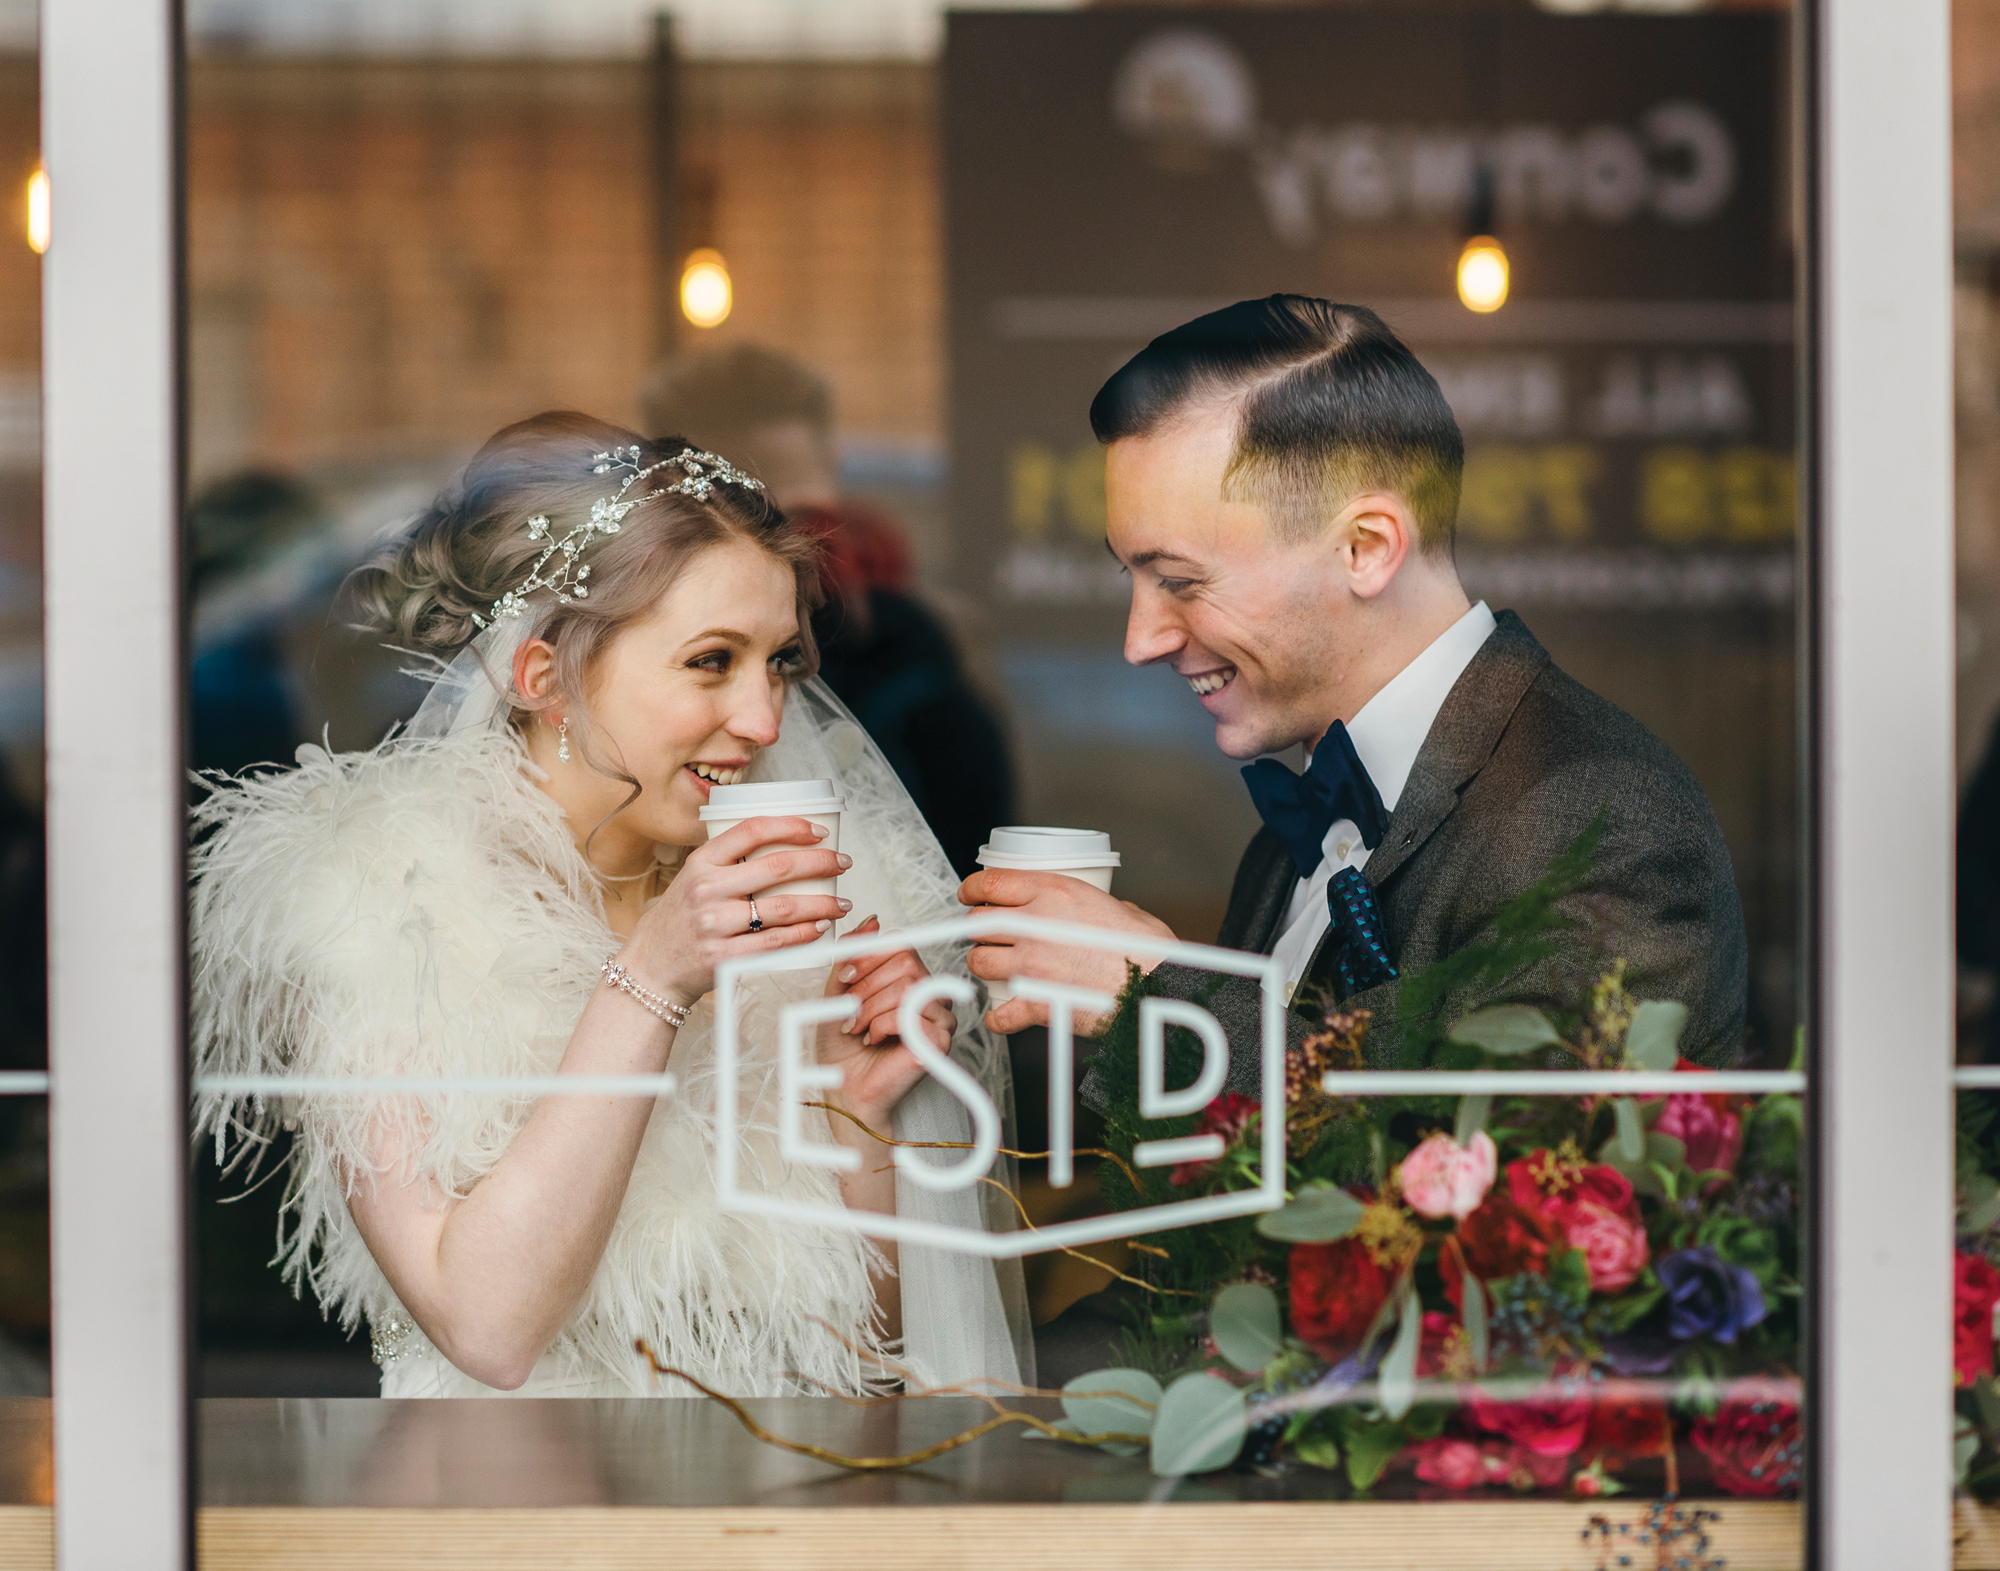 Frances_meaney_wedding_photographer_northern_ireland_inspire=weddings_5.jpg